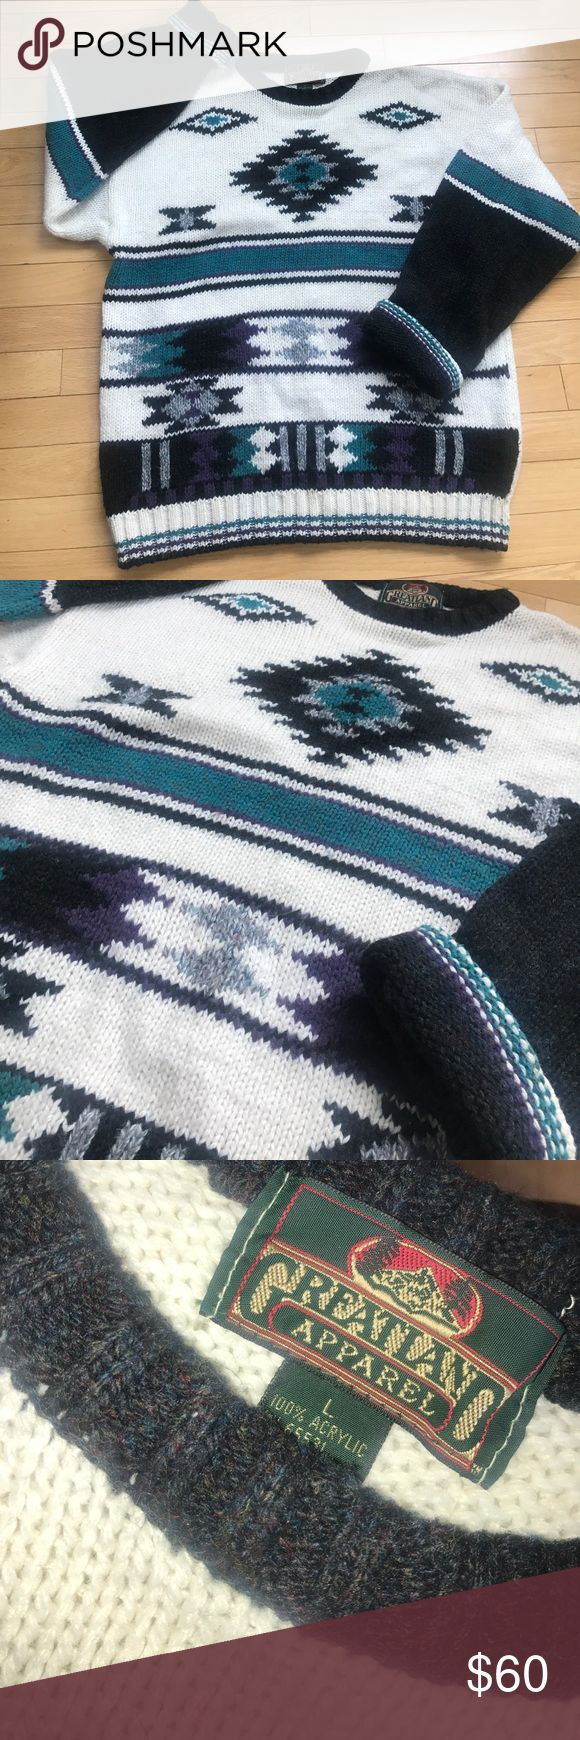 Men's large Vintage Greatland Apparel Sweater 😎 Men's  Vintage Large  Greatland Apparel Fall / Winter ❄️ Crewneck Sweater 😎. Pre- loved Great condition . 100 Acrylic.  ( Wool appearance ) No rips , holes , or stains . Slight pillage at the bottom.  Main colors are : White/ Cream , Grey multi color , purple and Aqua Blue Greatland Apparel Sweaters Crewneck